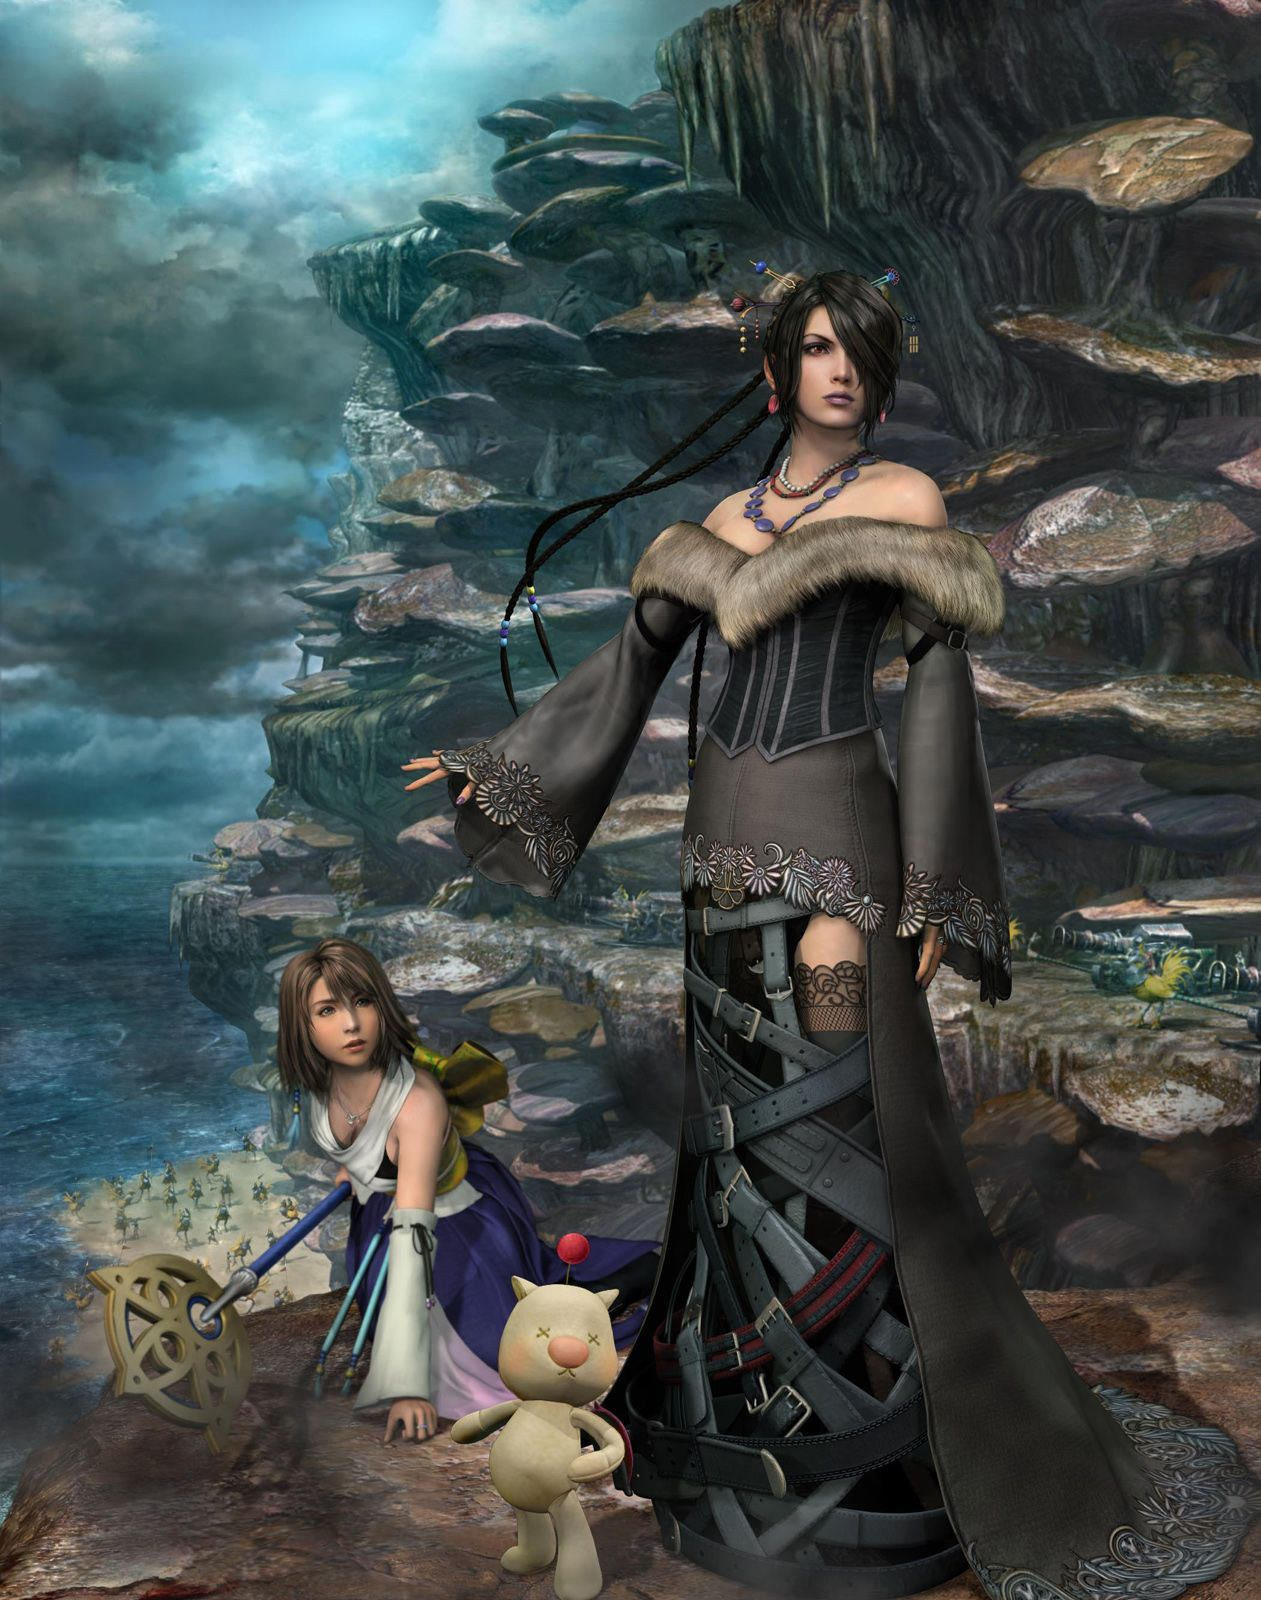 Pin By Tracey Bates On Final Fantasy Lulu Final Fantasy Final Fantasy X Yuna Final Fantasy